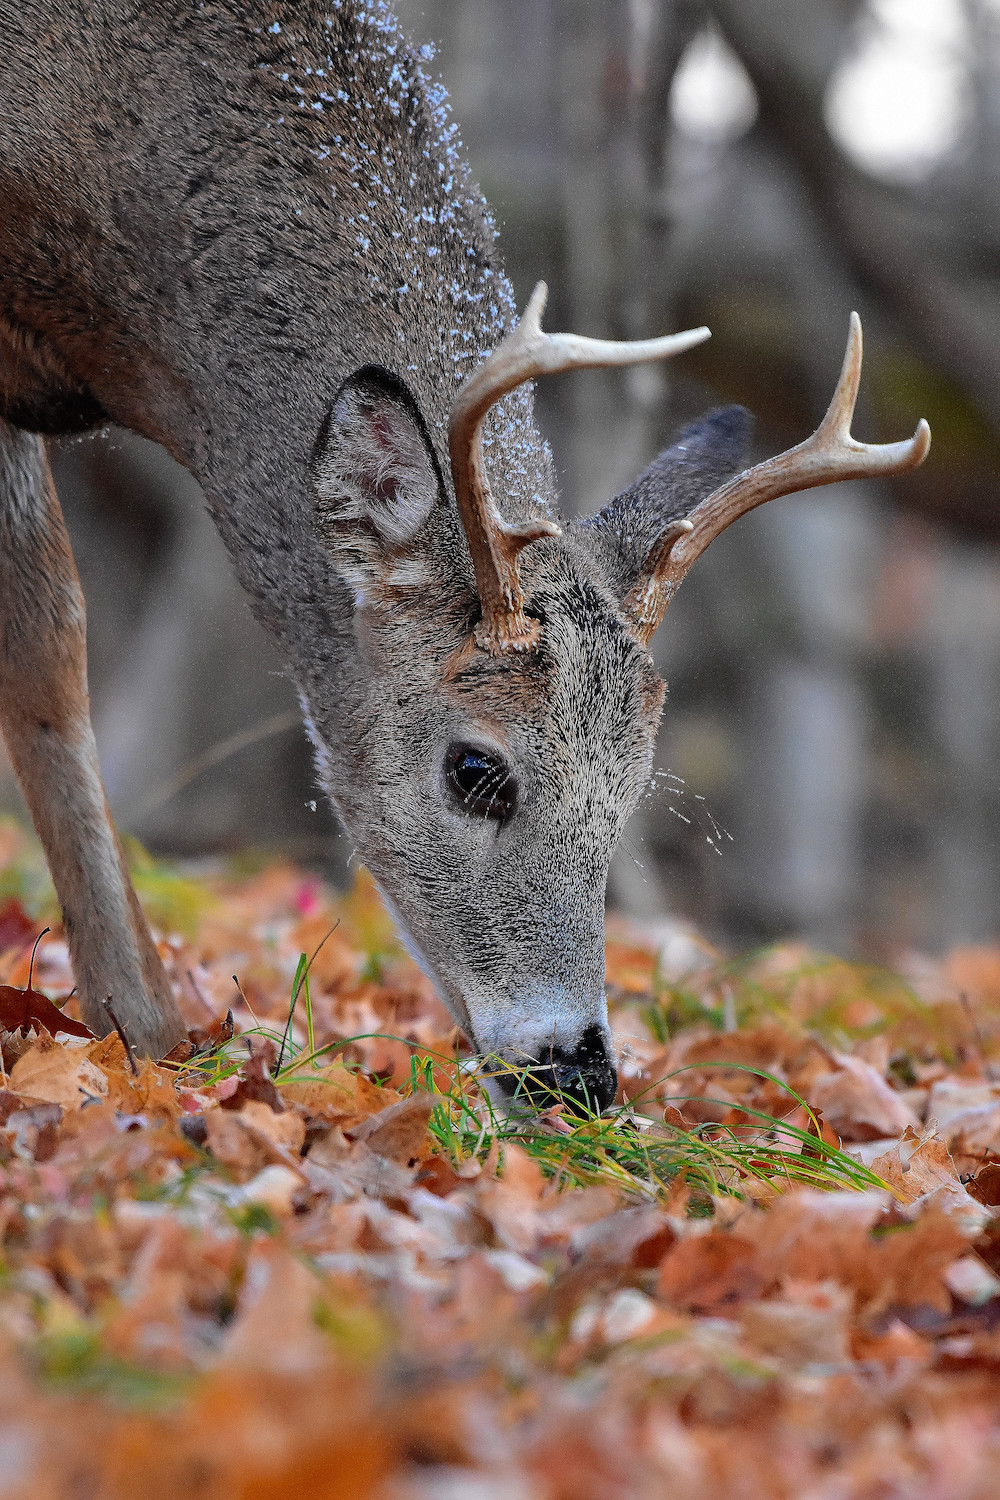 A gray, brown adult male white-tailed deer forages for food on the forest floor. The deer has a little snow on its fur.